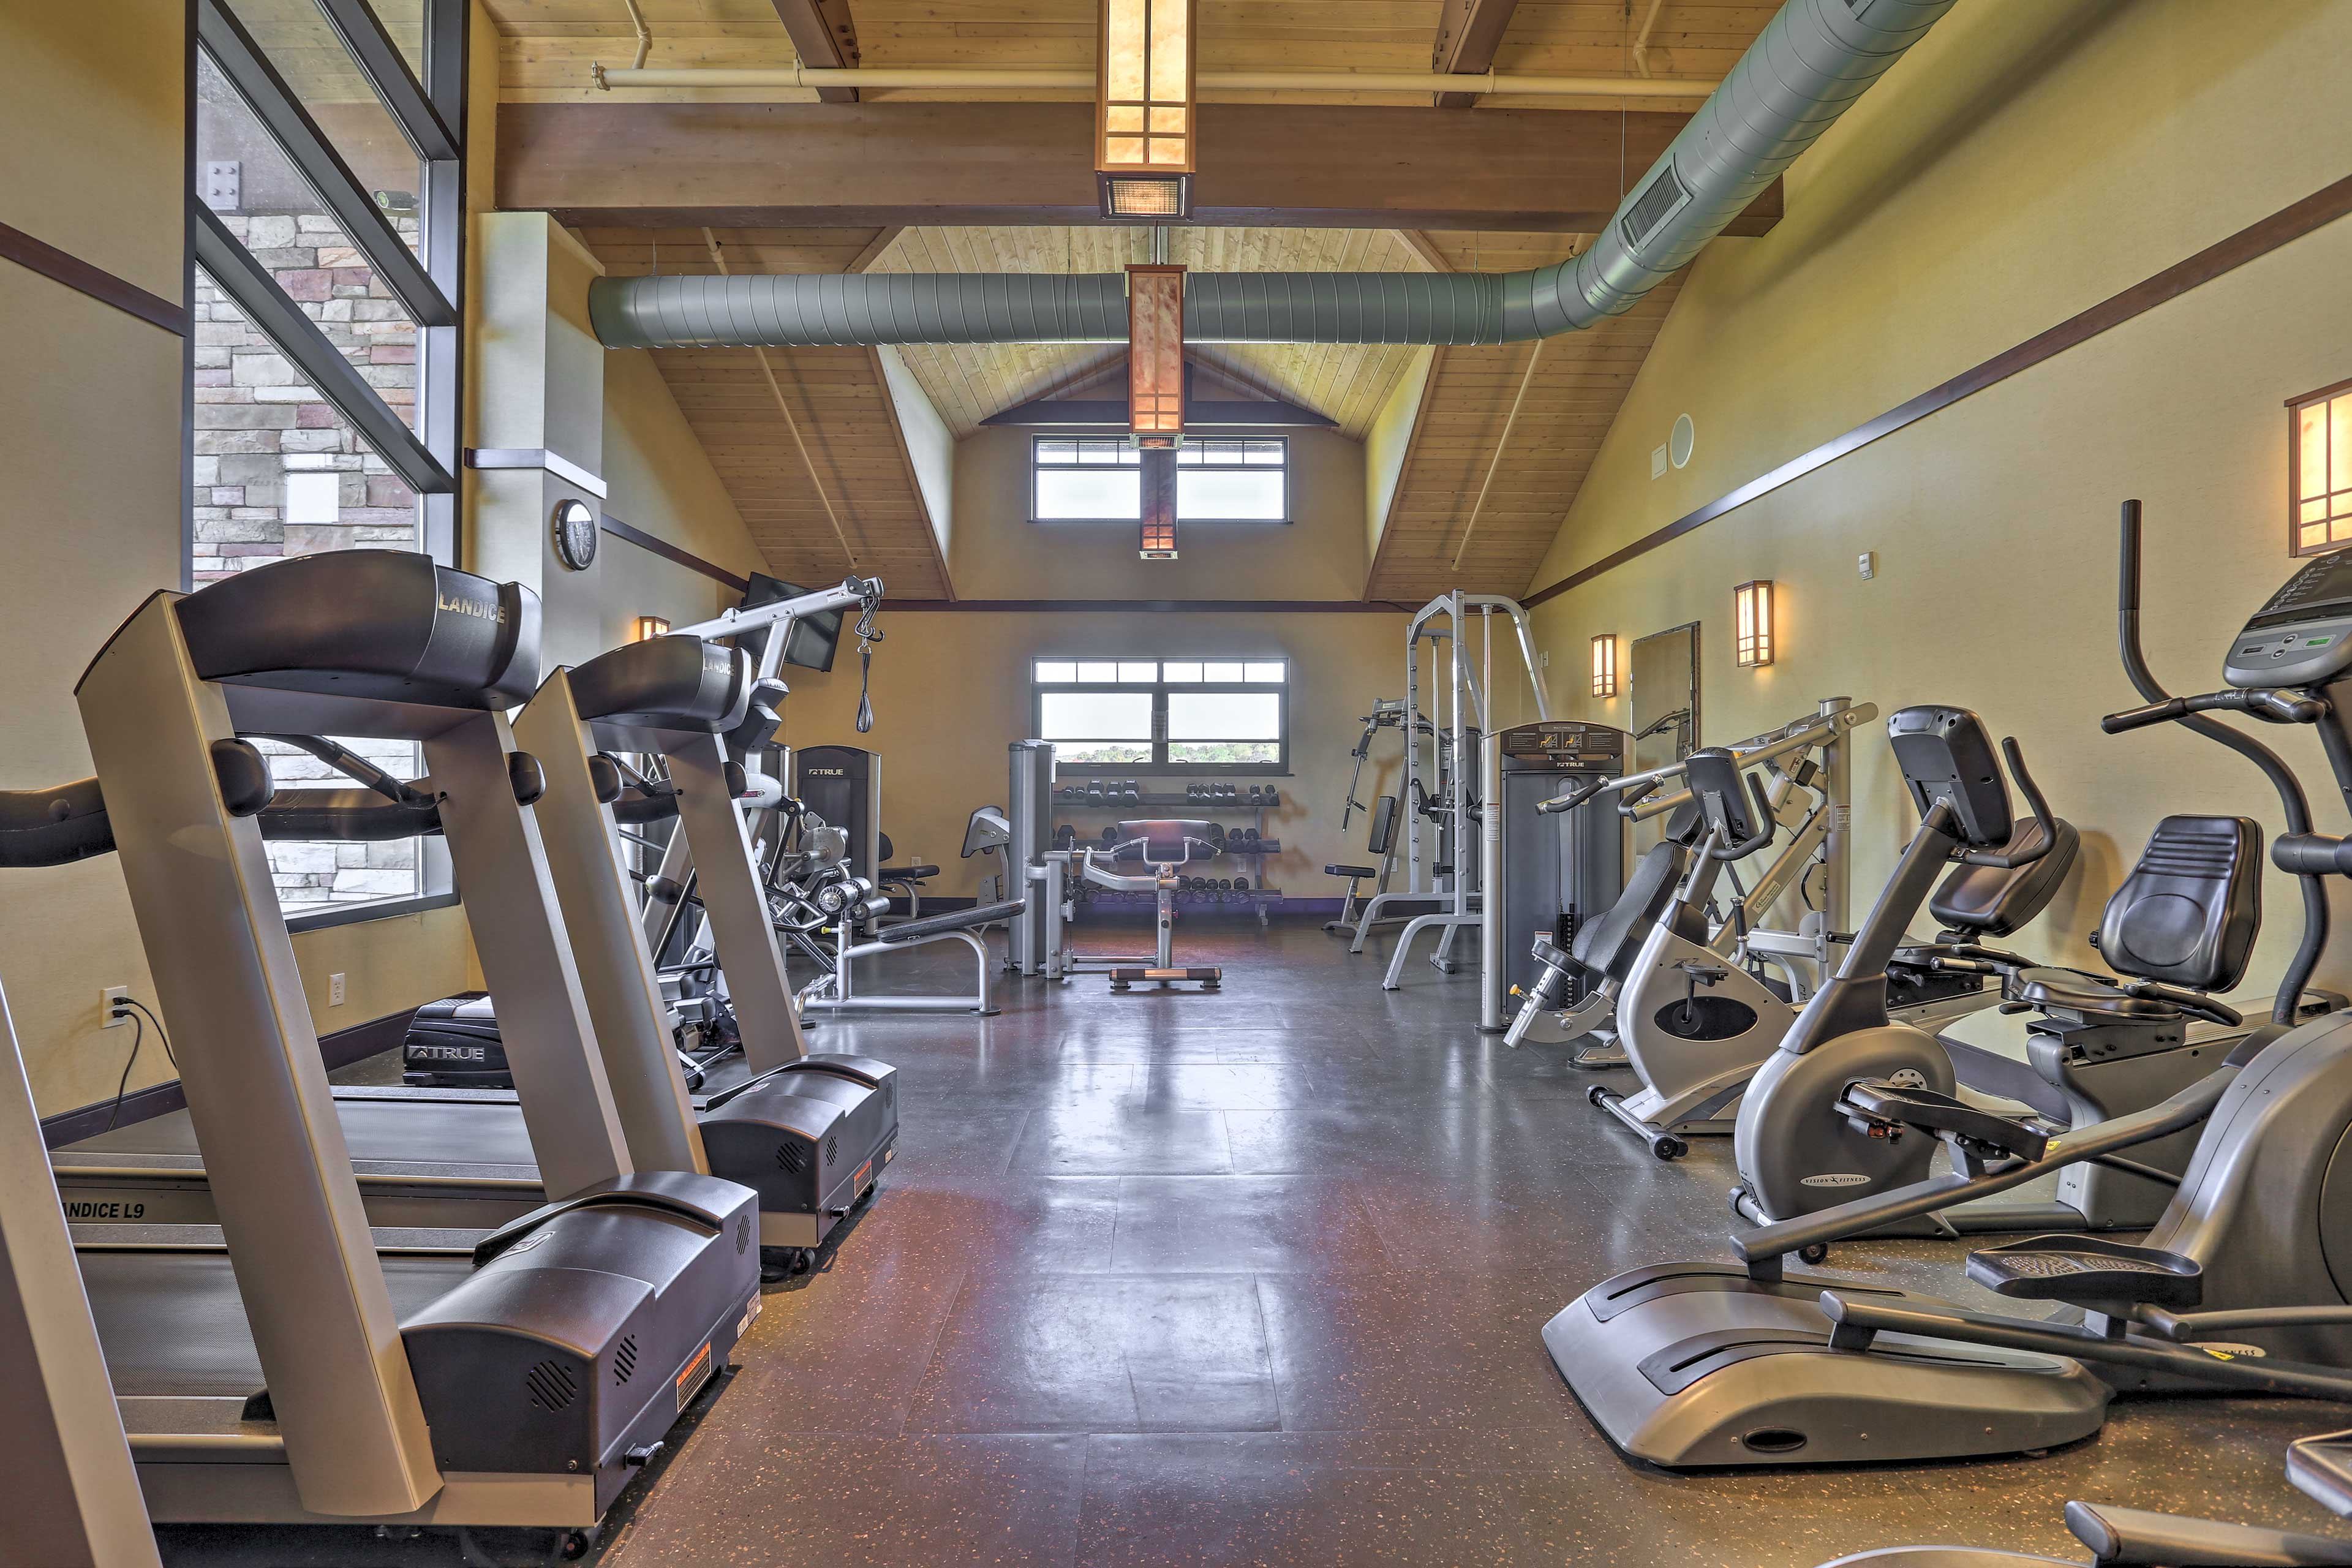 Work up a sweat in the fitness center!